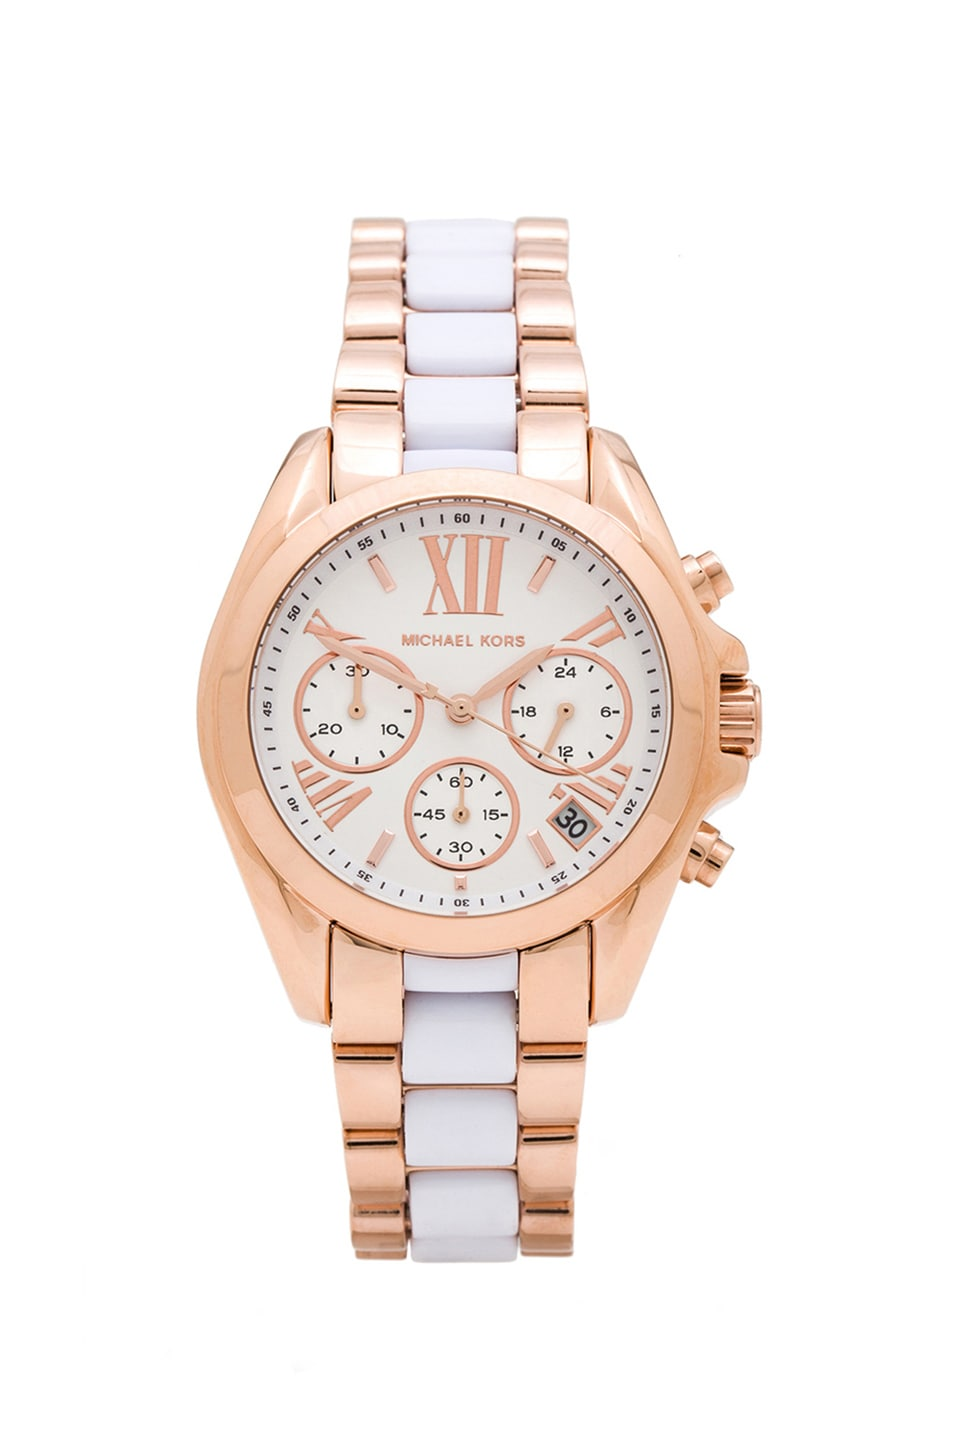 Michael Kors Mini Bradshaw in Rosegold & White